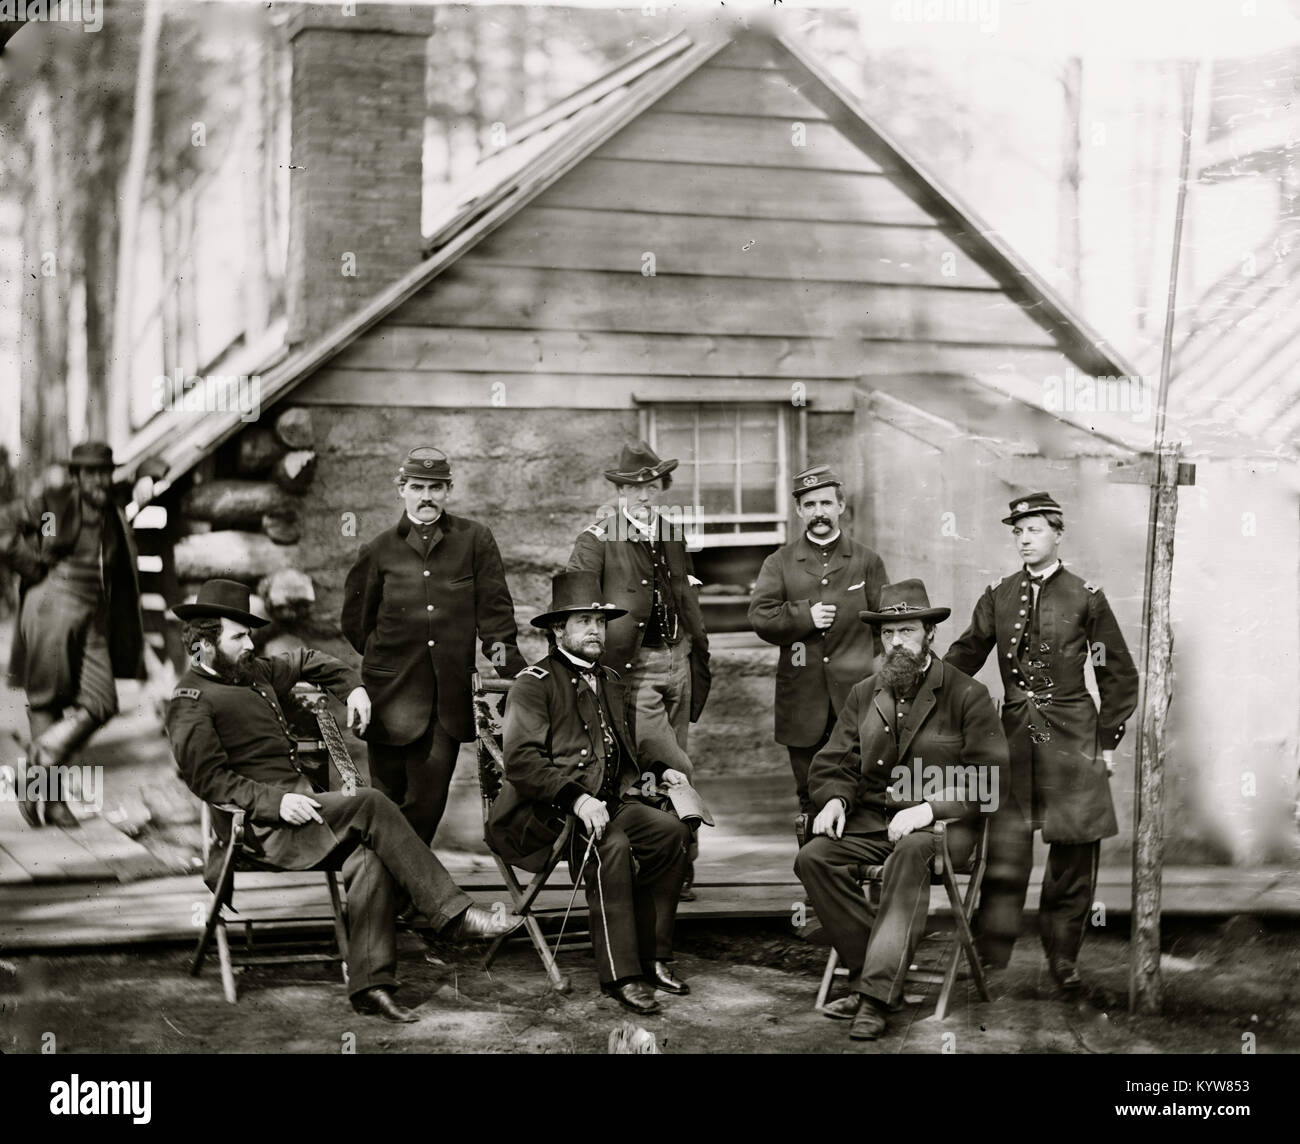 Brandy Station, Va. Gen. Rufus Ingalls and staff, Chief Quartermaster, and officers, Army of the Potomac headquarters - Stock Image